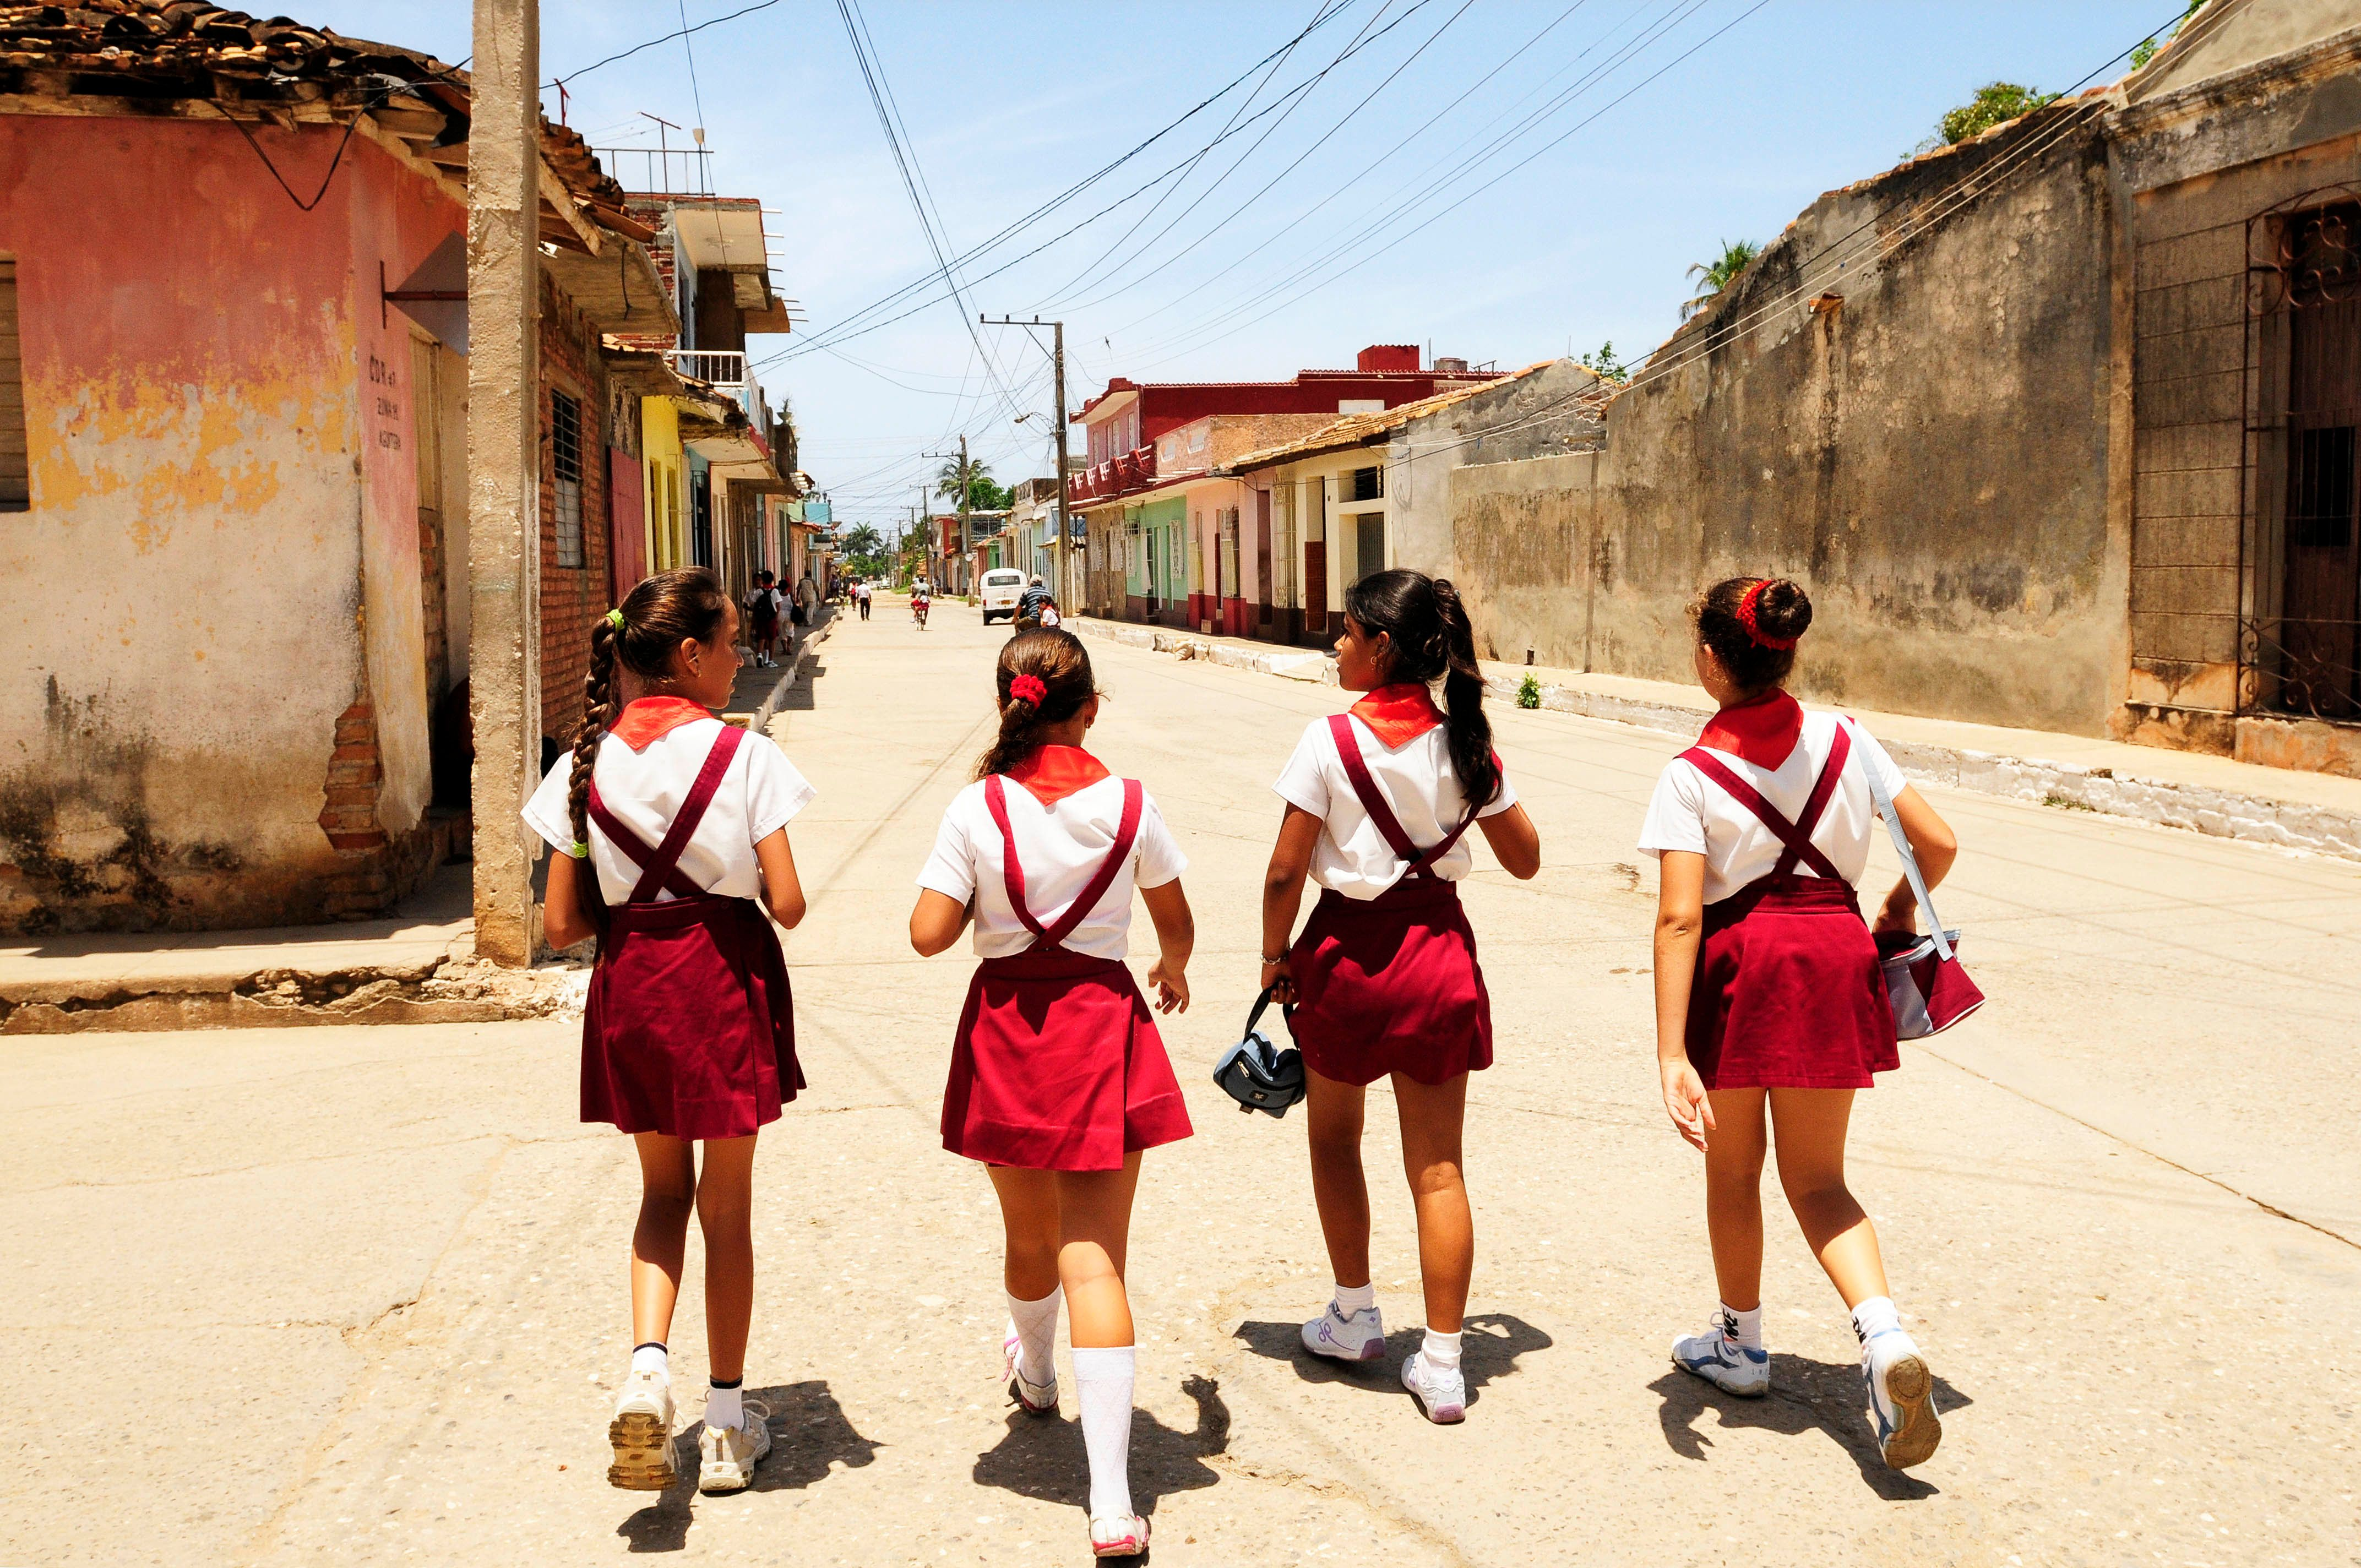 50 Captivating Photos Of Girls Going To School Around The World - HuffPost